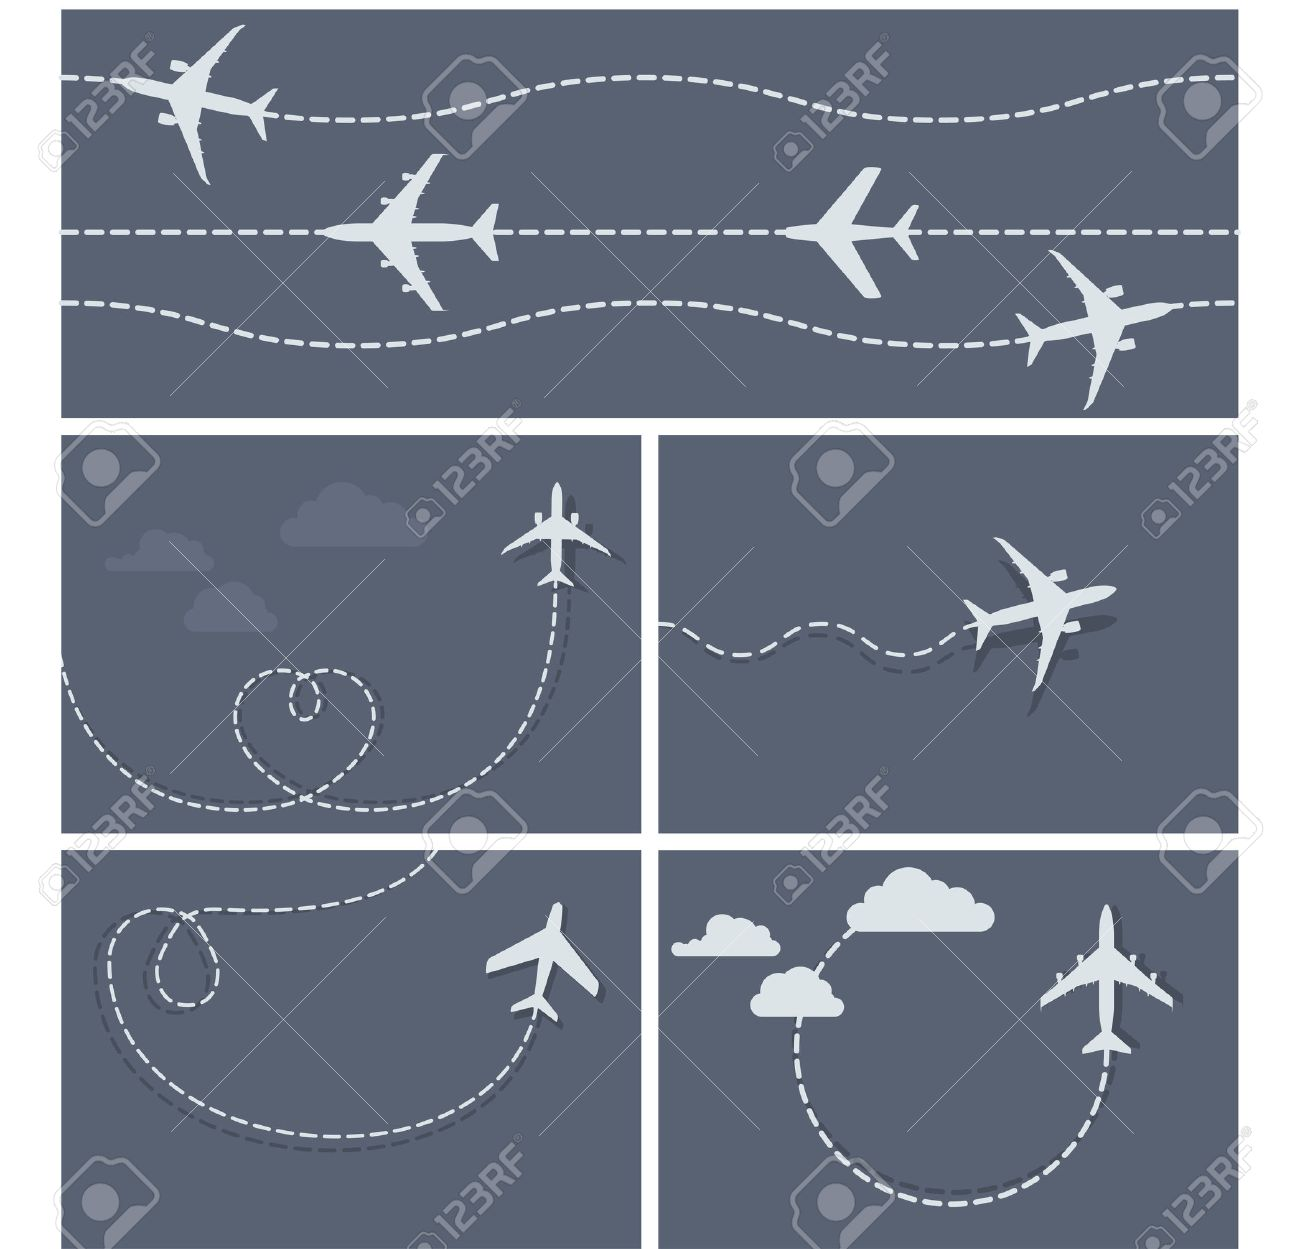 Plane flight - dotted trace of the airplane, heart-shaped and loop - 42336644